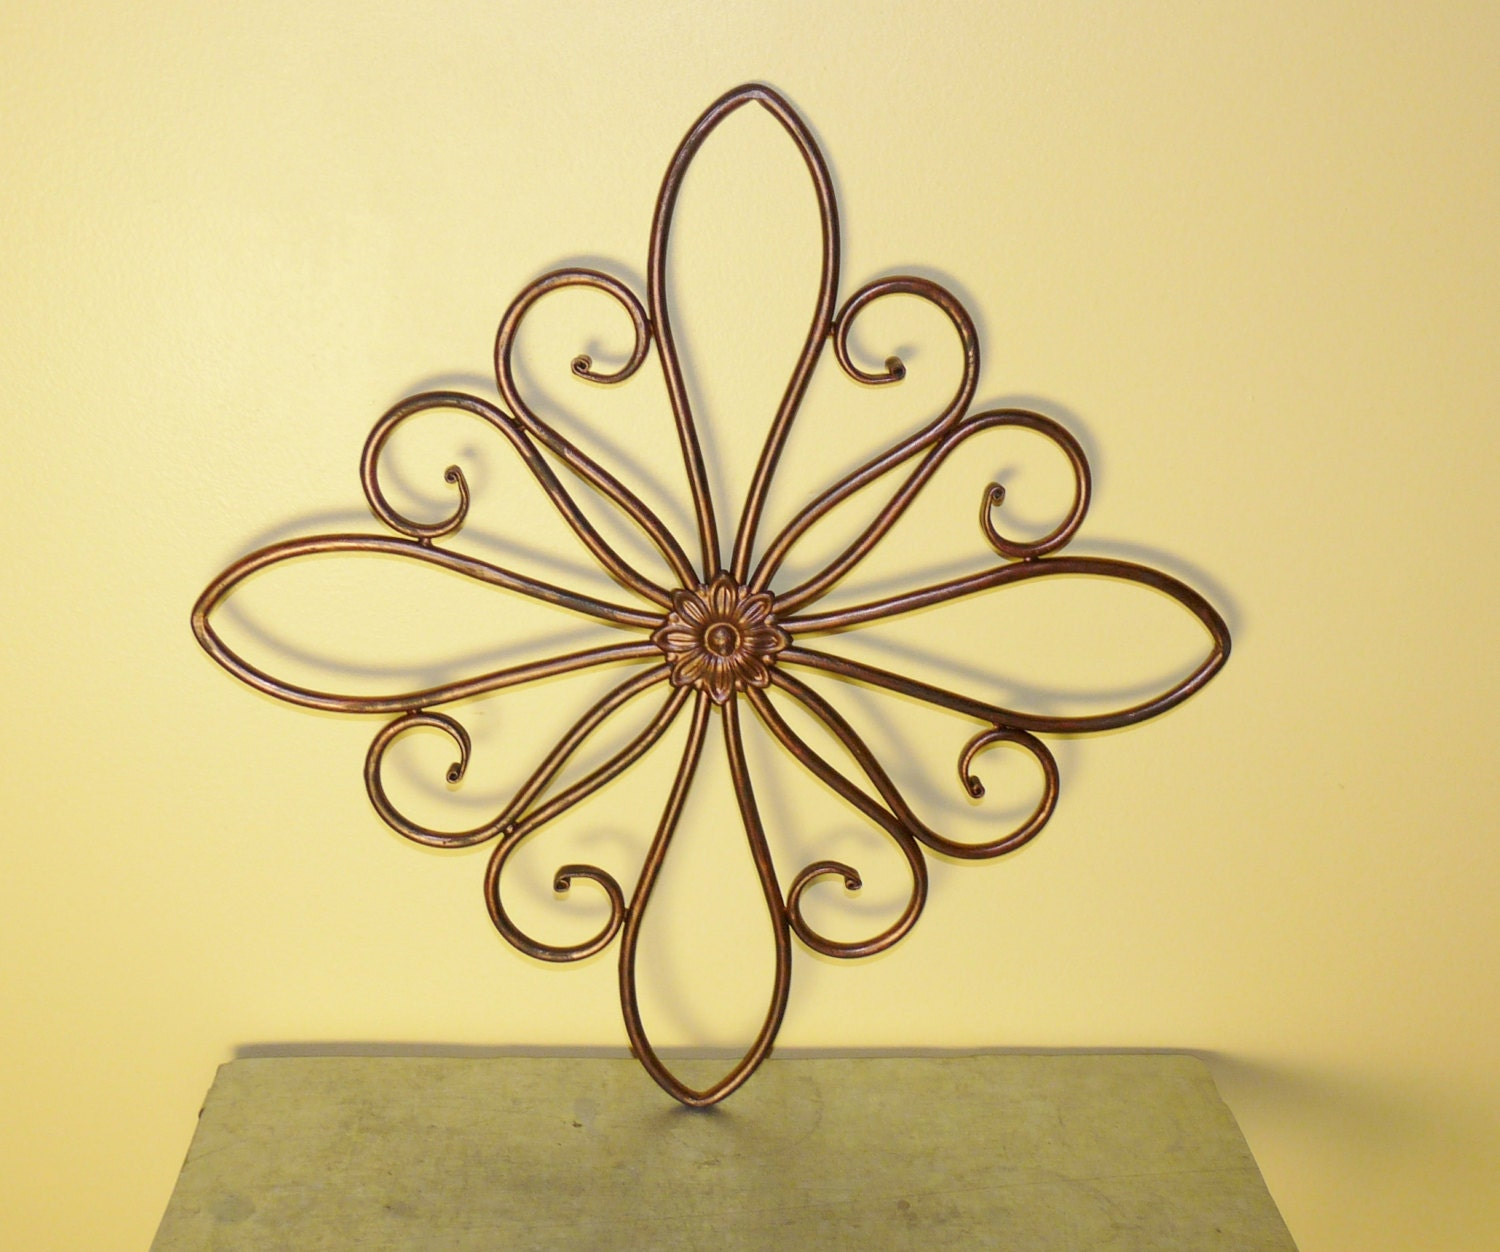 Amazing Metal Scroll Wall Art Pictures Inspiration - The Wall Art ...